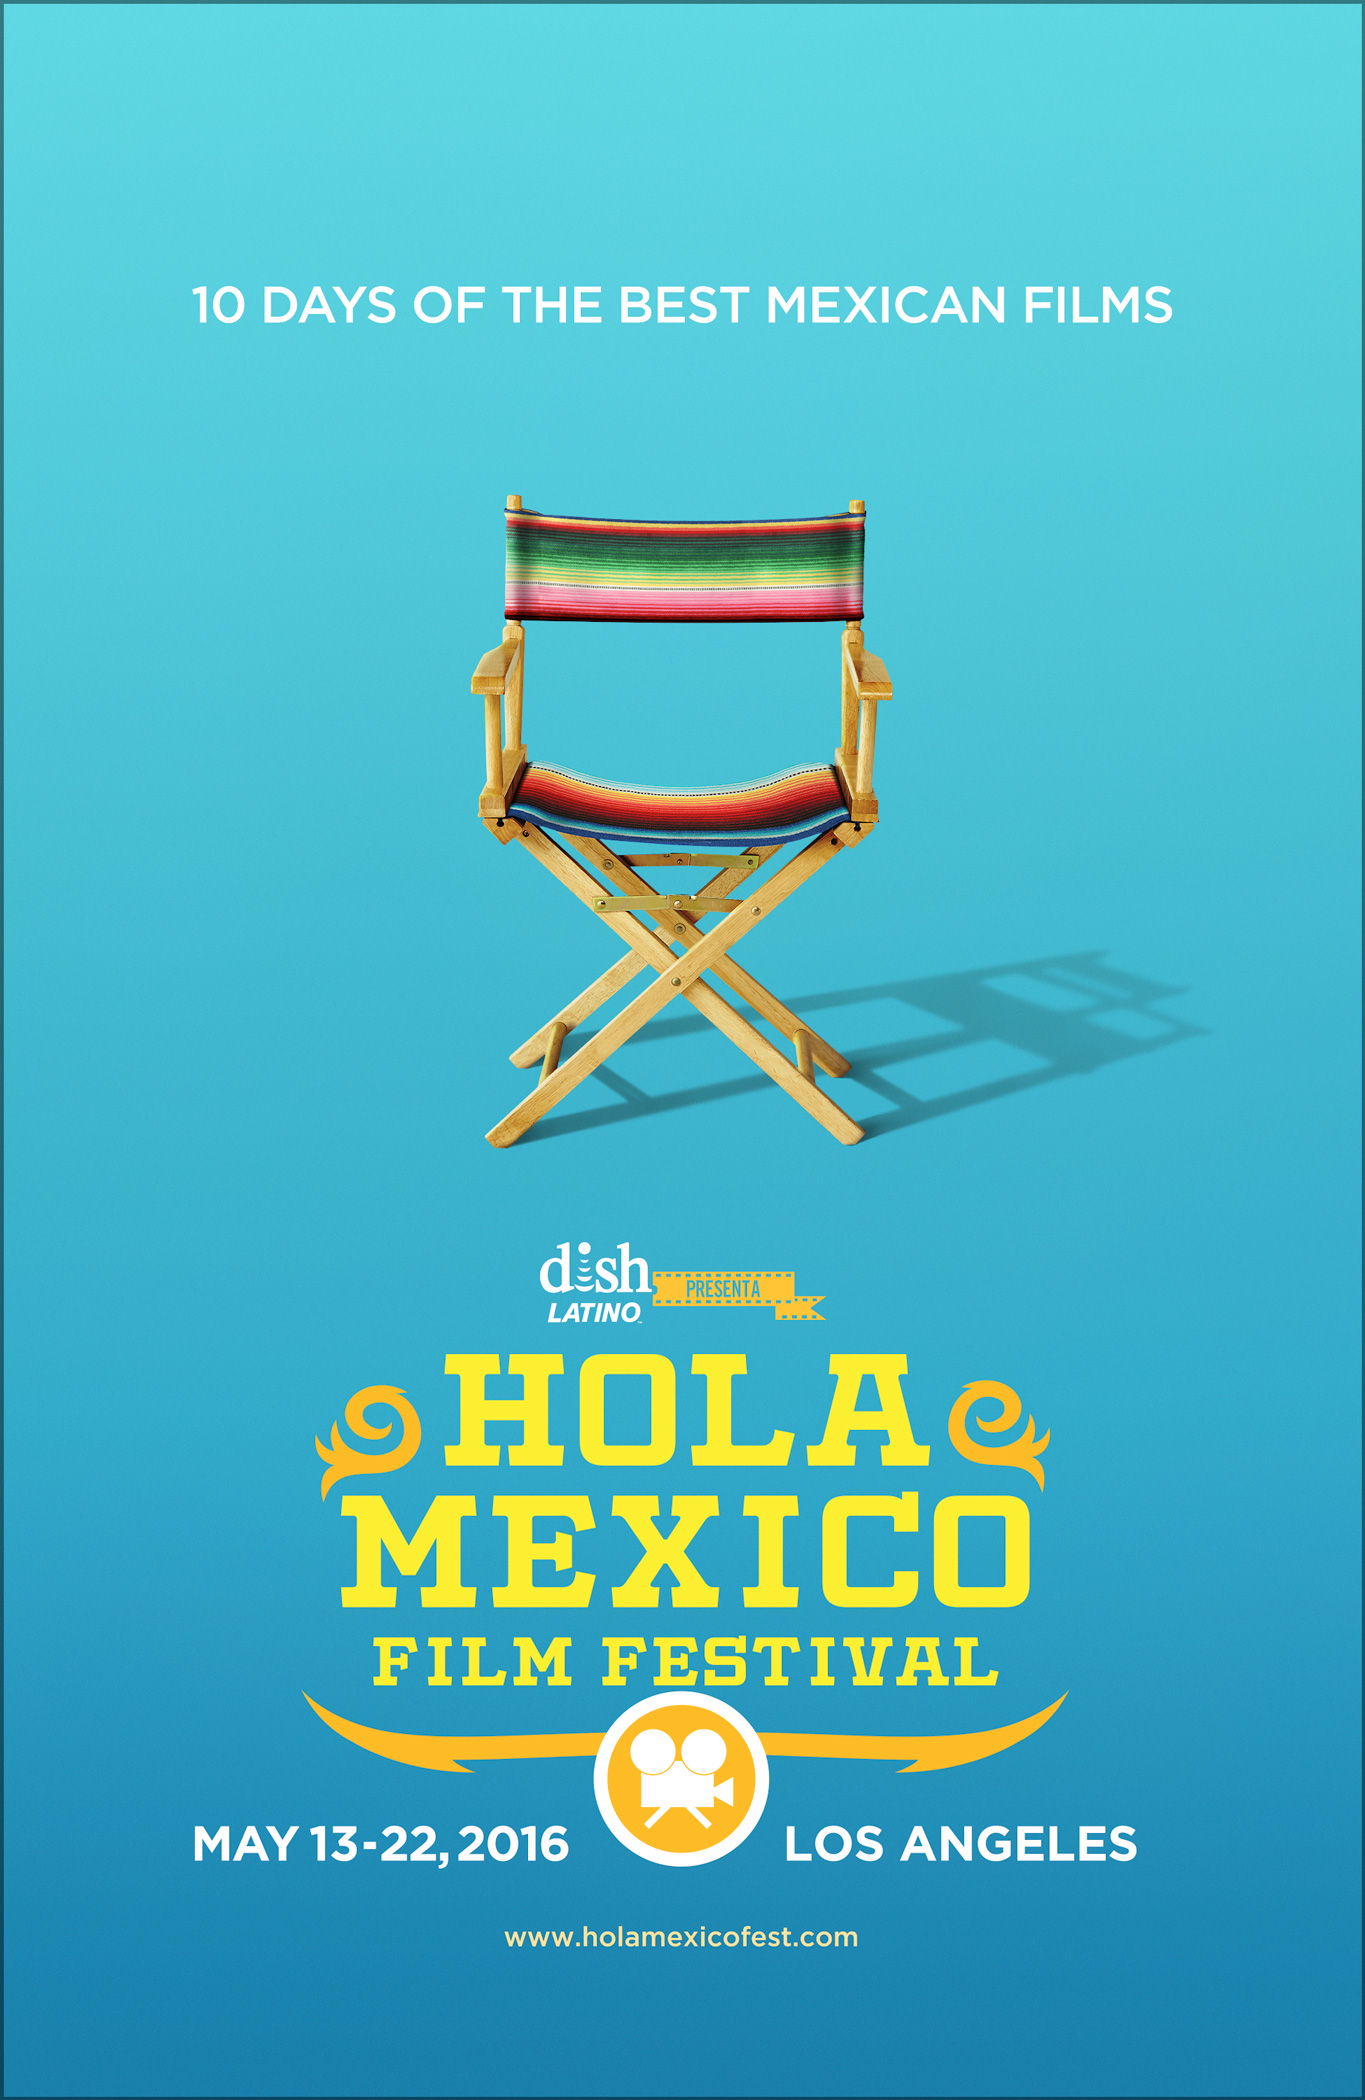 Films Hola Mexico Film Festival